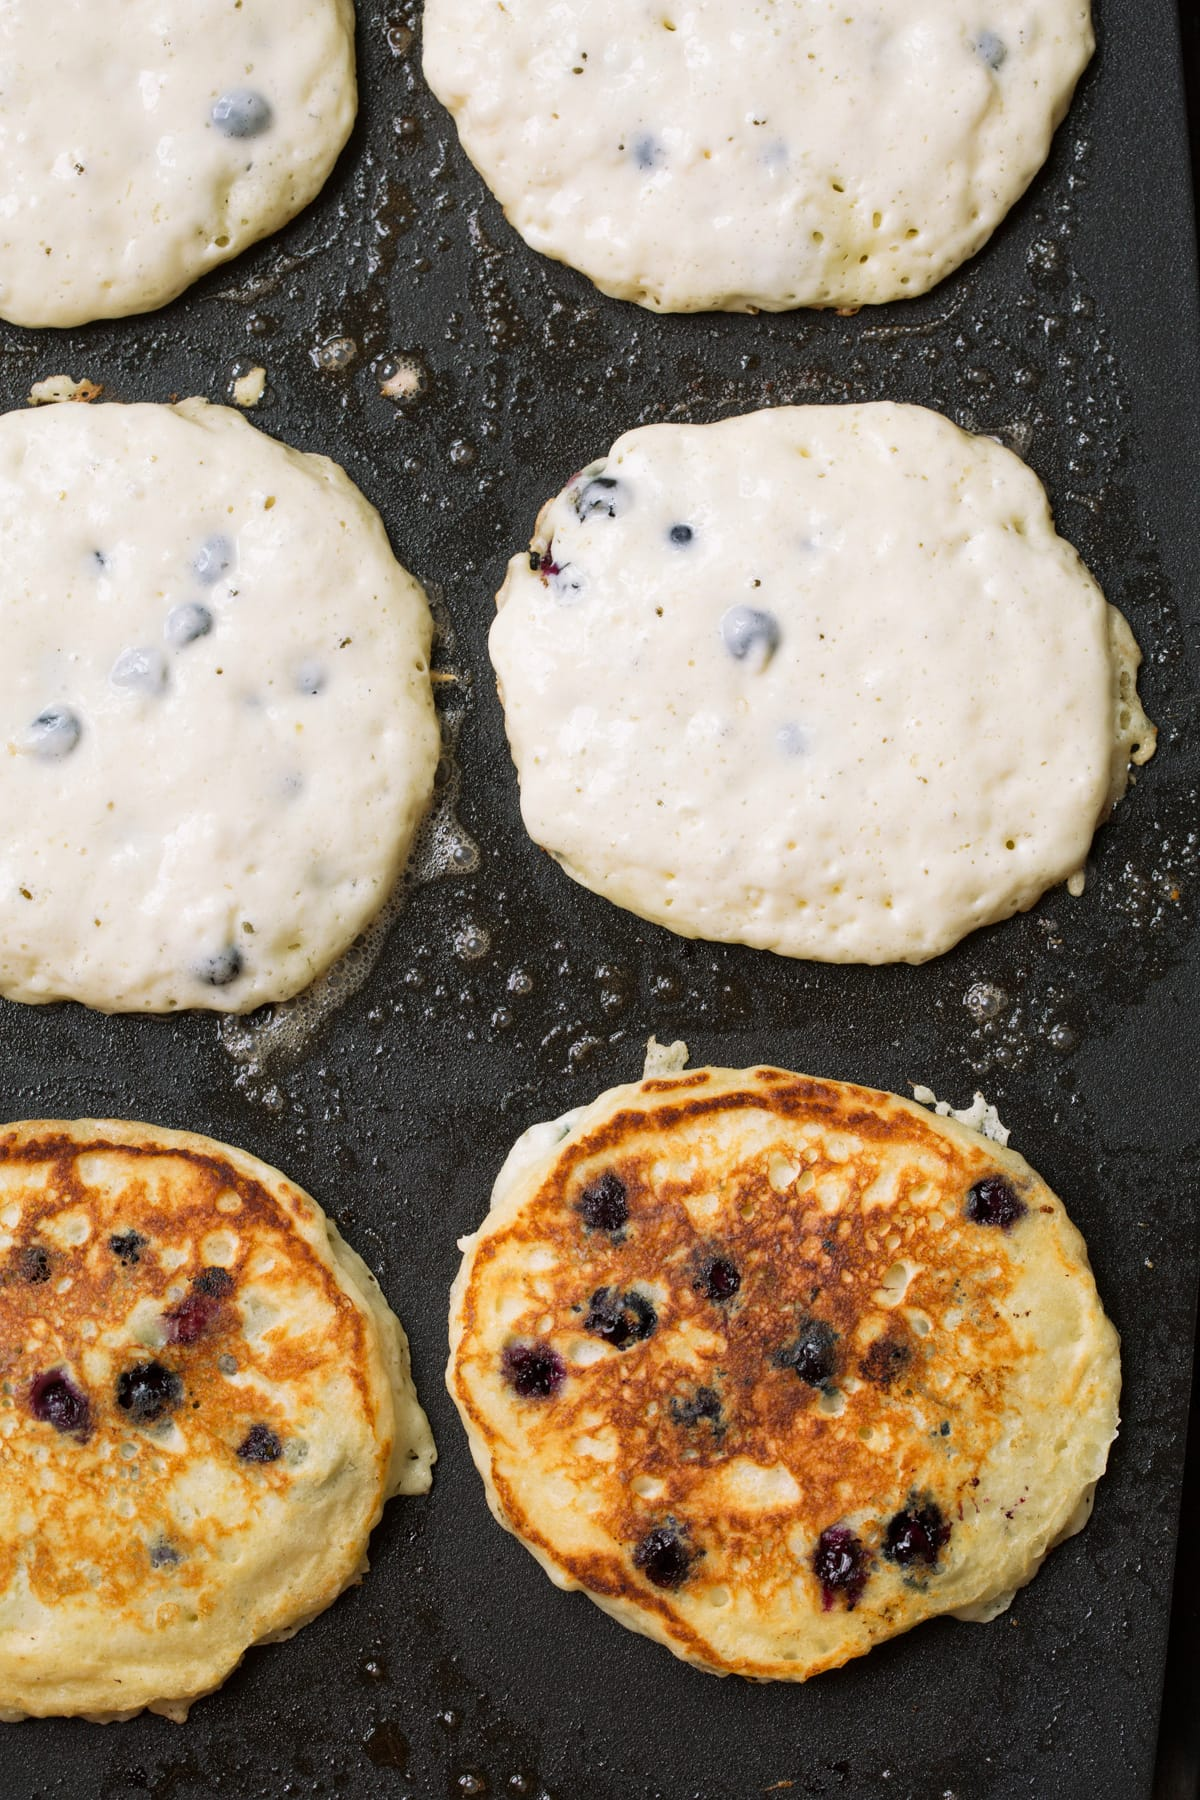 Showing how to cook blueberry pancakes on a griddle.